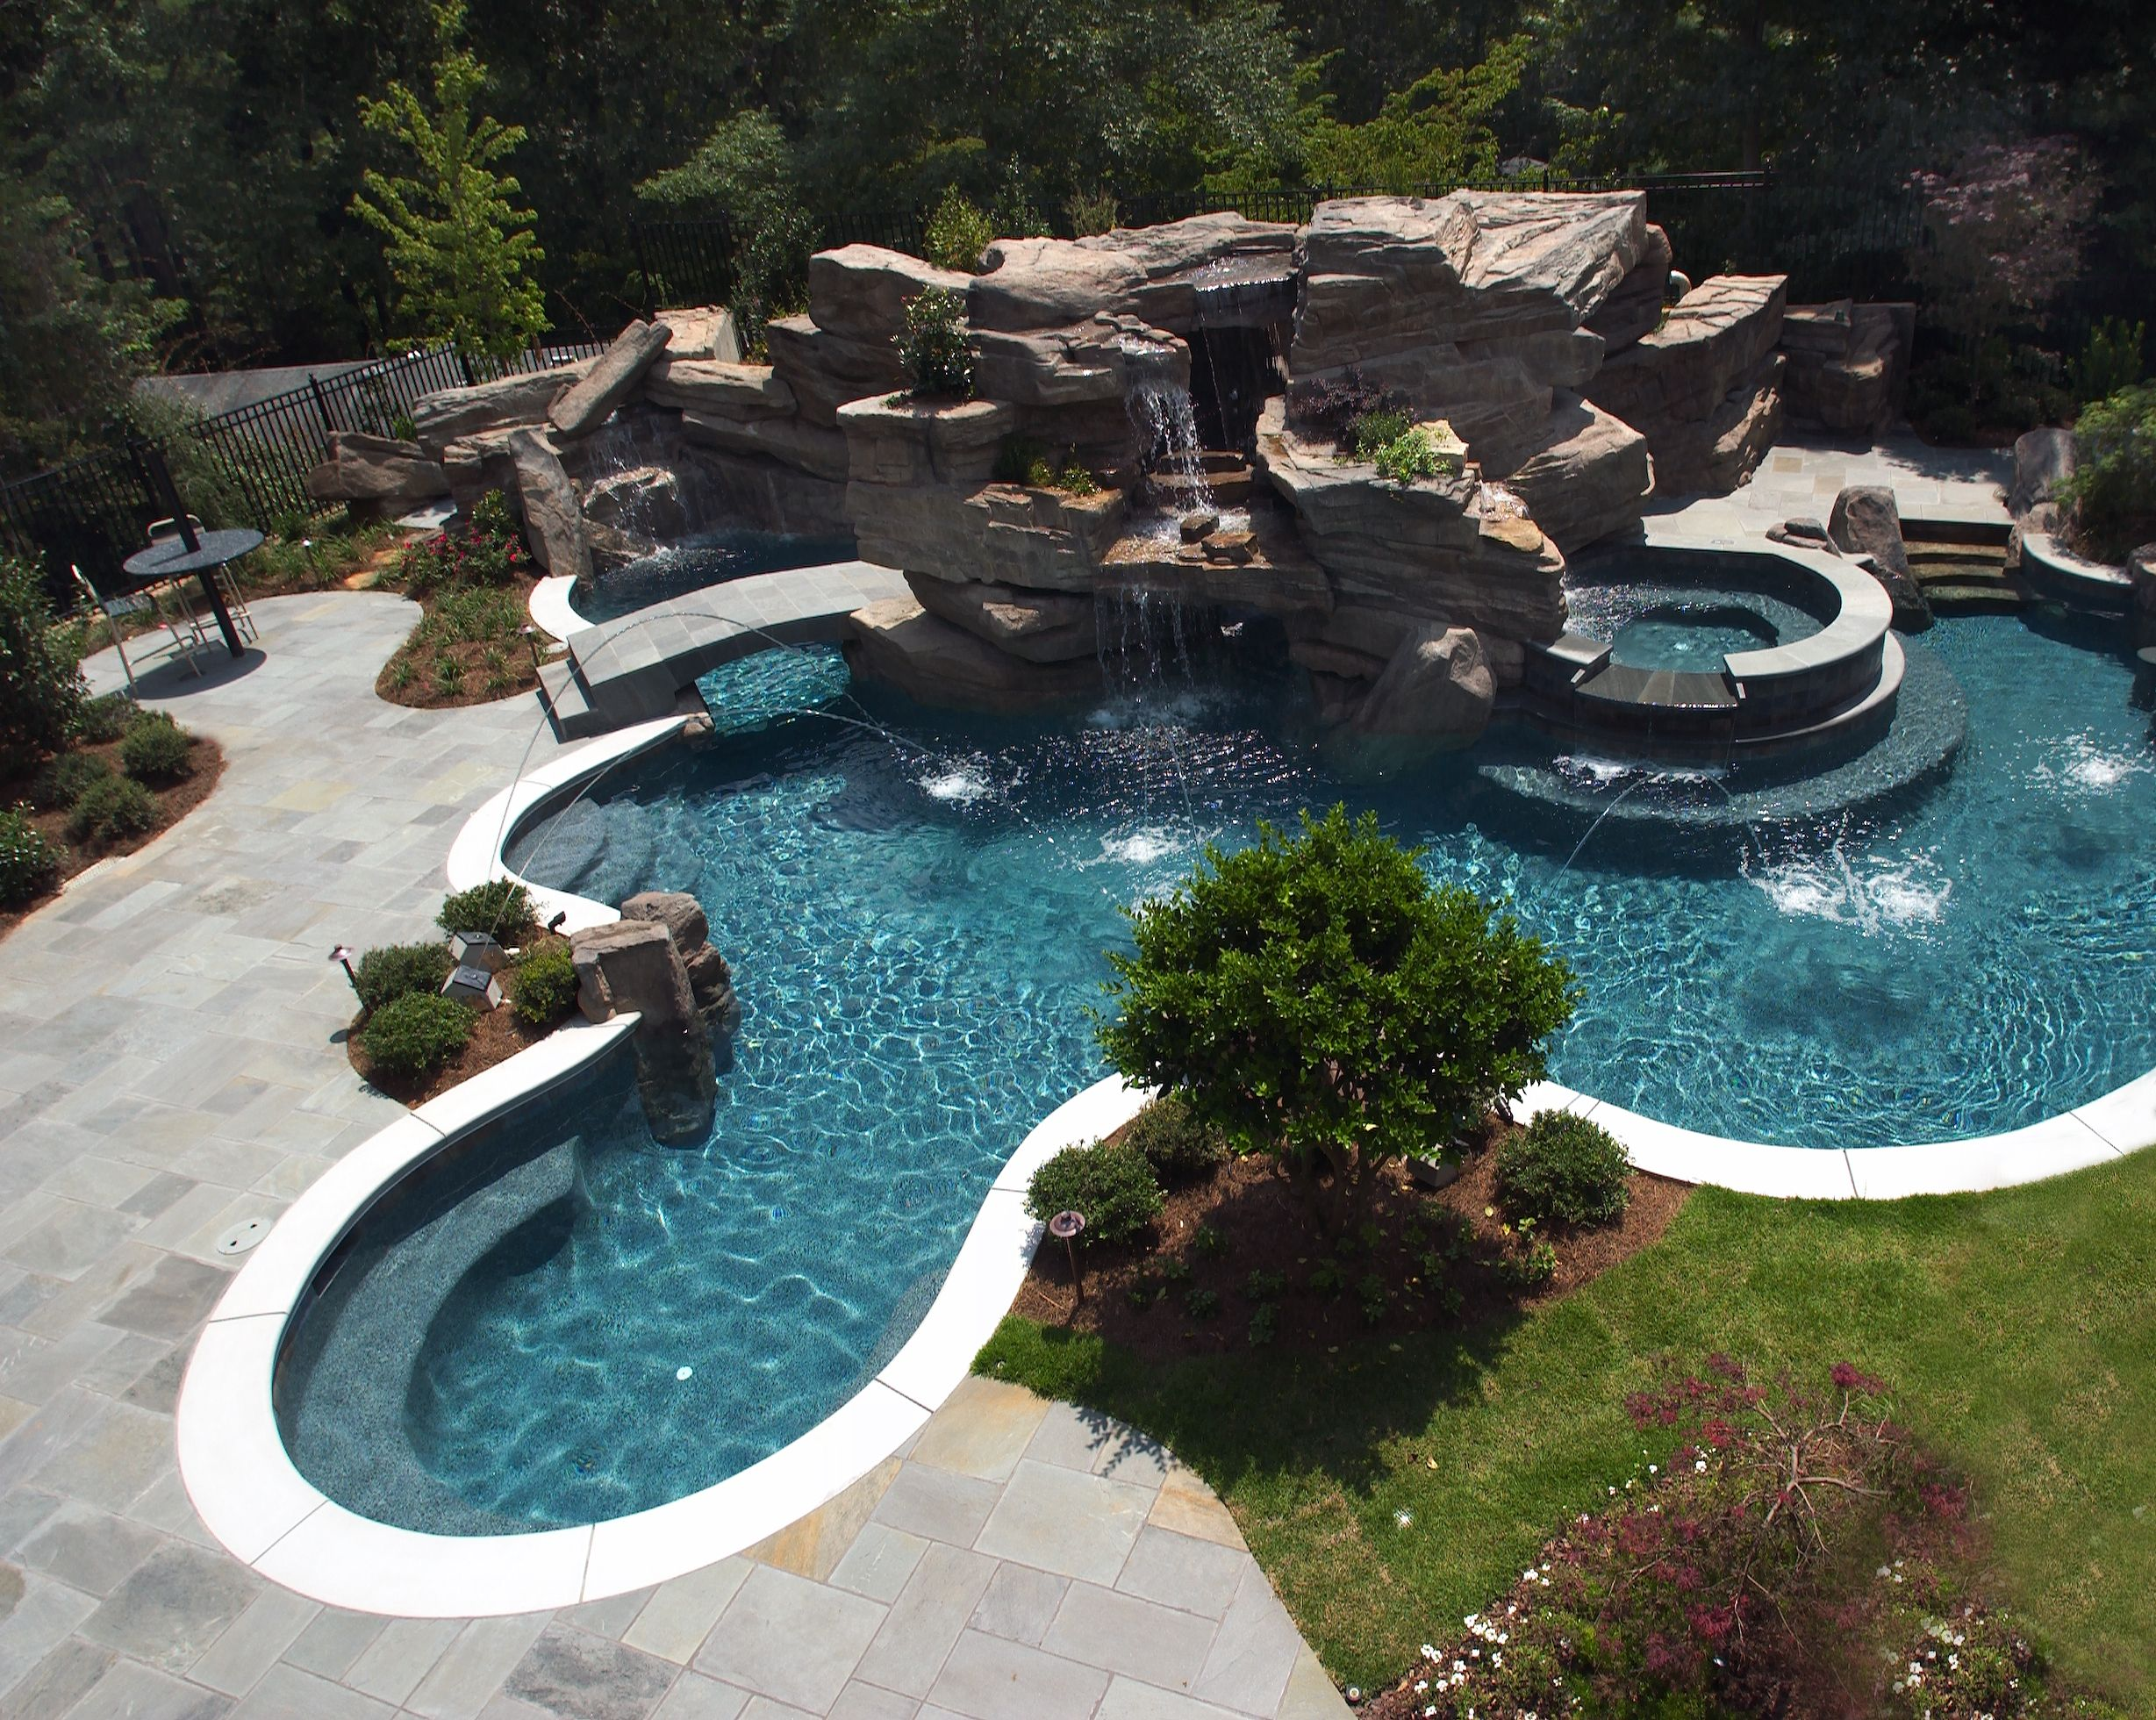 Pool Designs With Waterfalls And Slides. Elaborate Swimming Pool Featuring  Large Grotto, Waterfall And